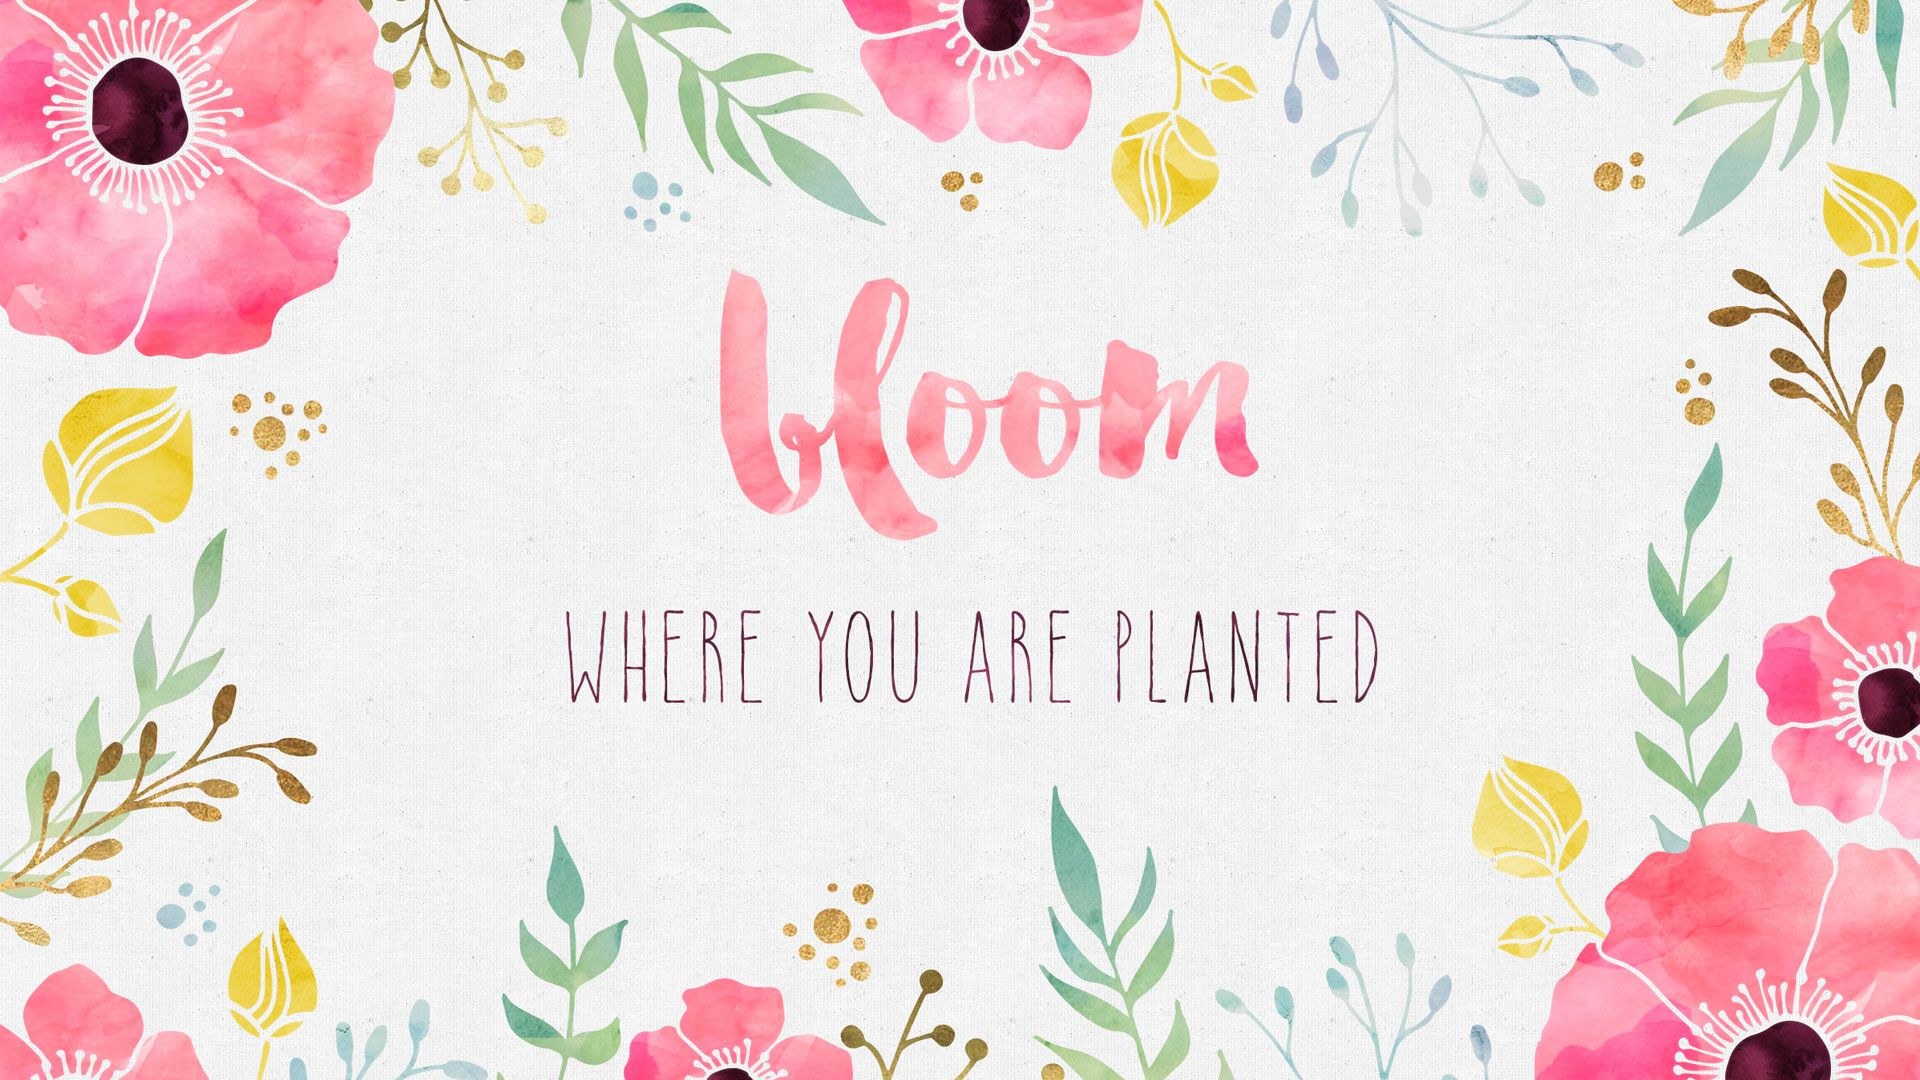 Free Desktop Wallpaper - Bloom Where you are Planted  Free desktop wallpaper...